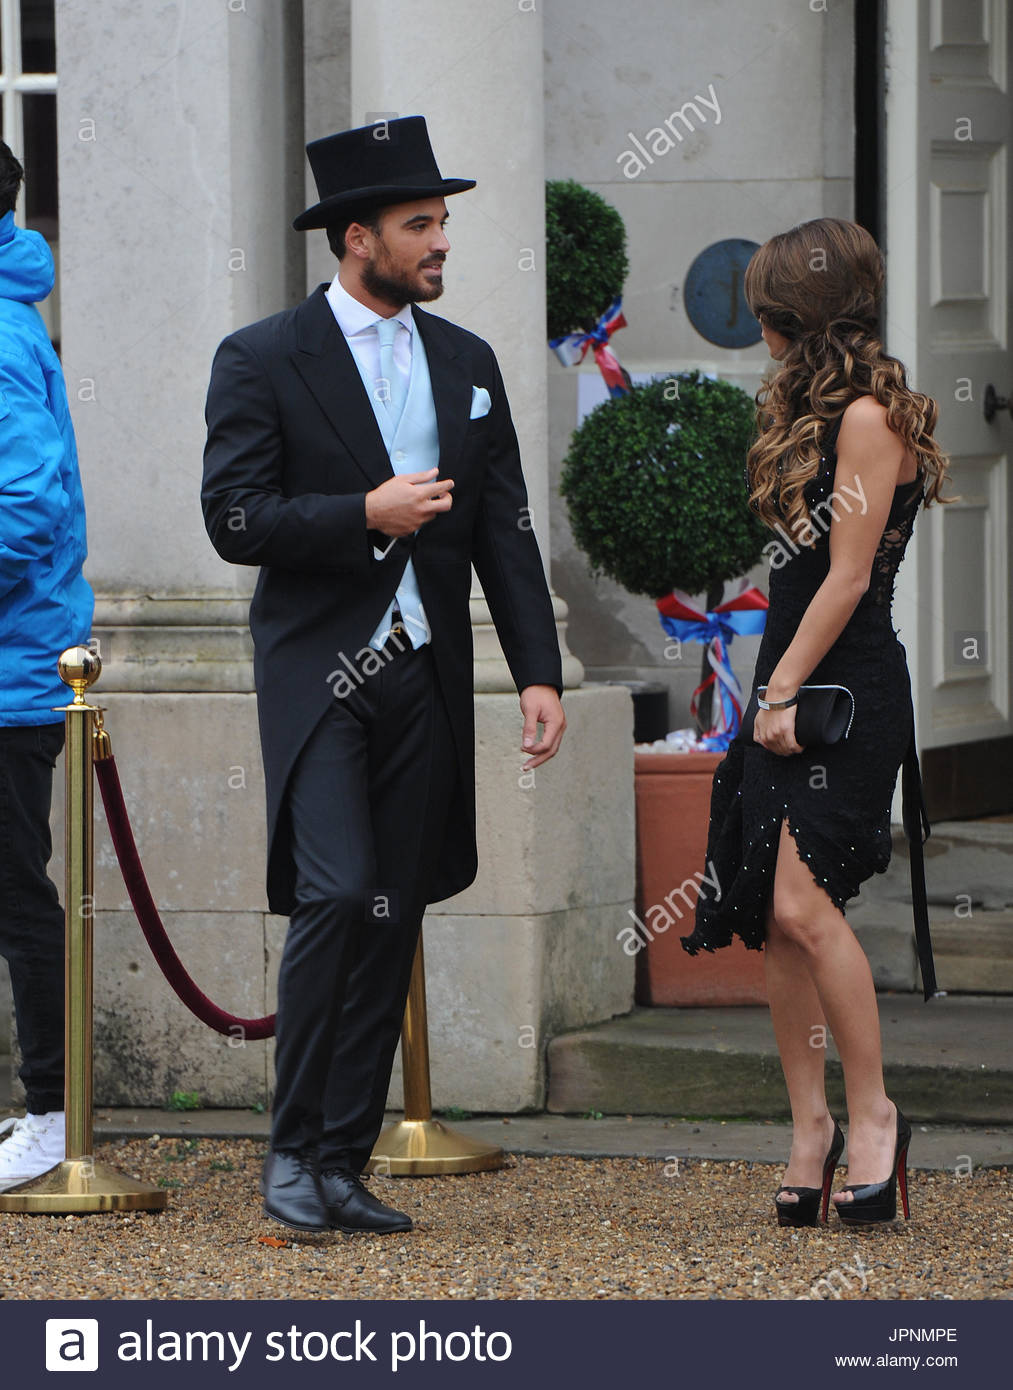 michael-hassini-nicole-bass-towie-cast-film-their-royal-wedding-theme-JPNMPE Towie Cast Film Their Royal Wedding Theme Finale They Celebrated Nanny Pats Birthday At Addington Palace In Croydon She Was The Queen And The Cast Had